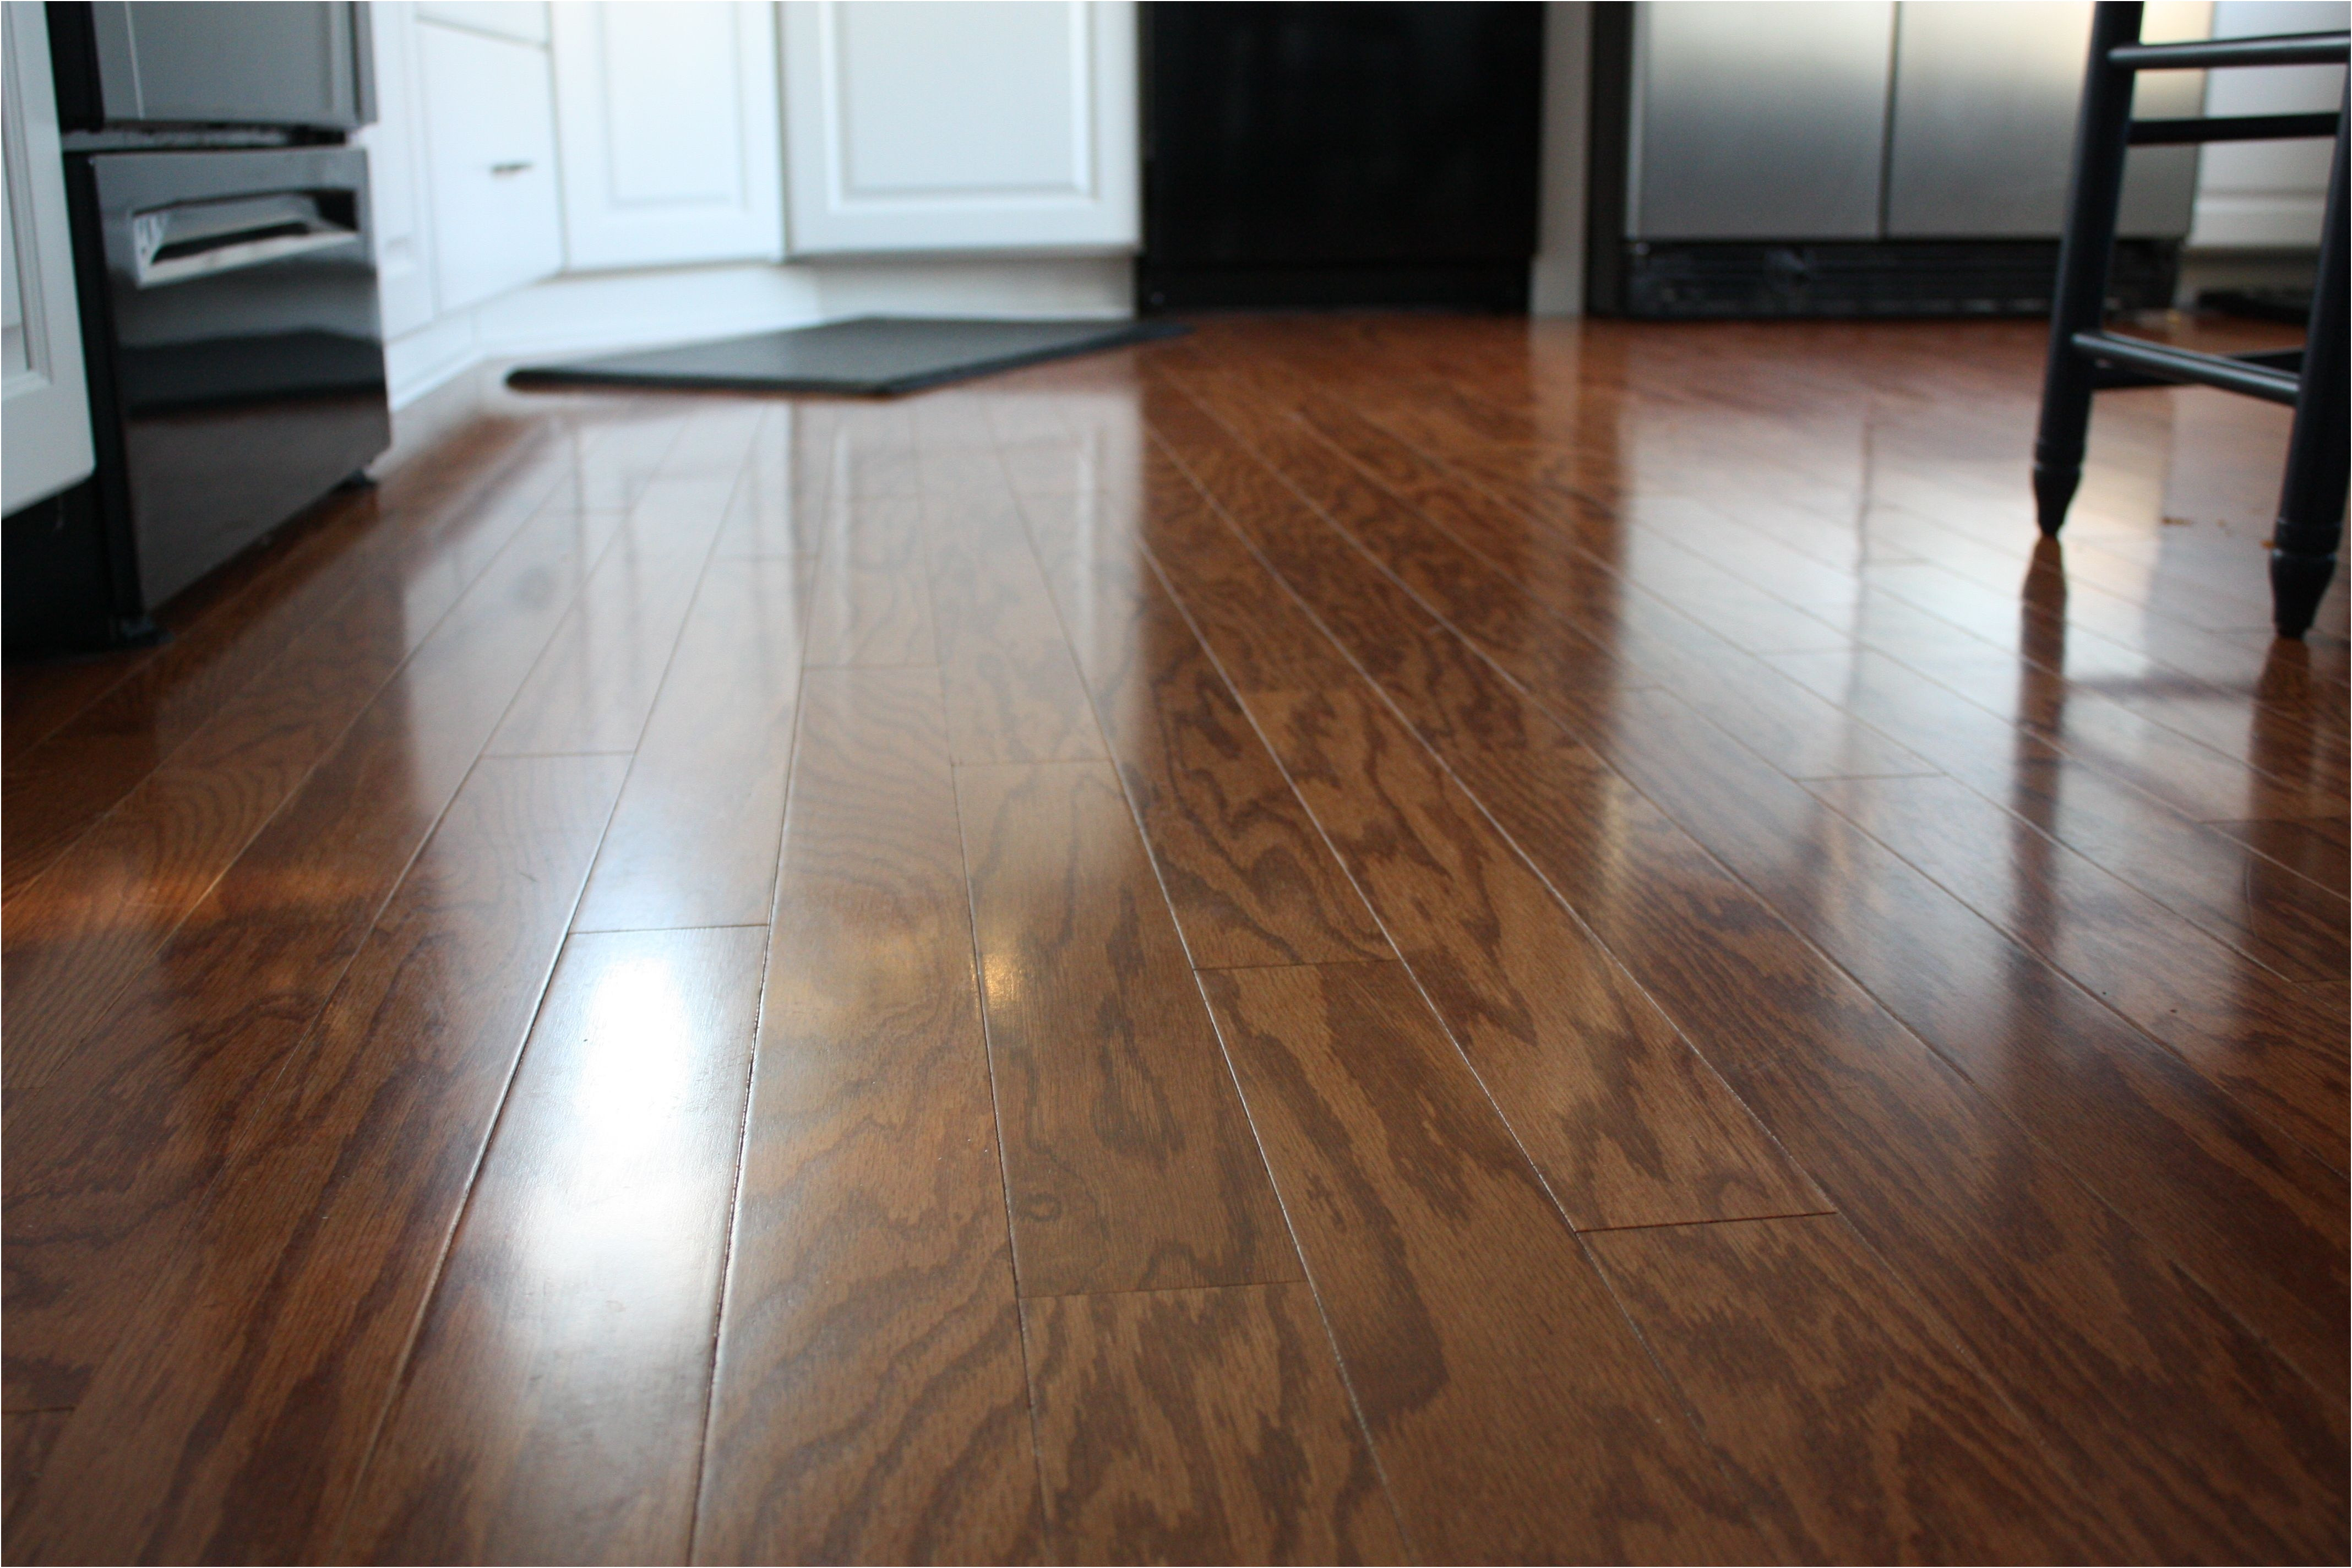 hardwood floor buffing pads of how to repair scratches on laminate flooring new hardwood floor within how to repair scratches on laminate flooring beautiful house of order tip 2 focus on the